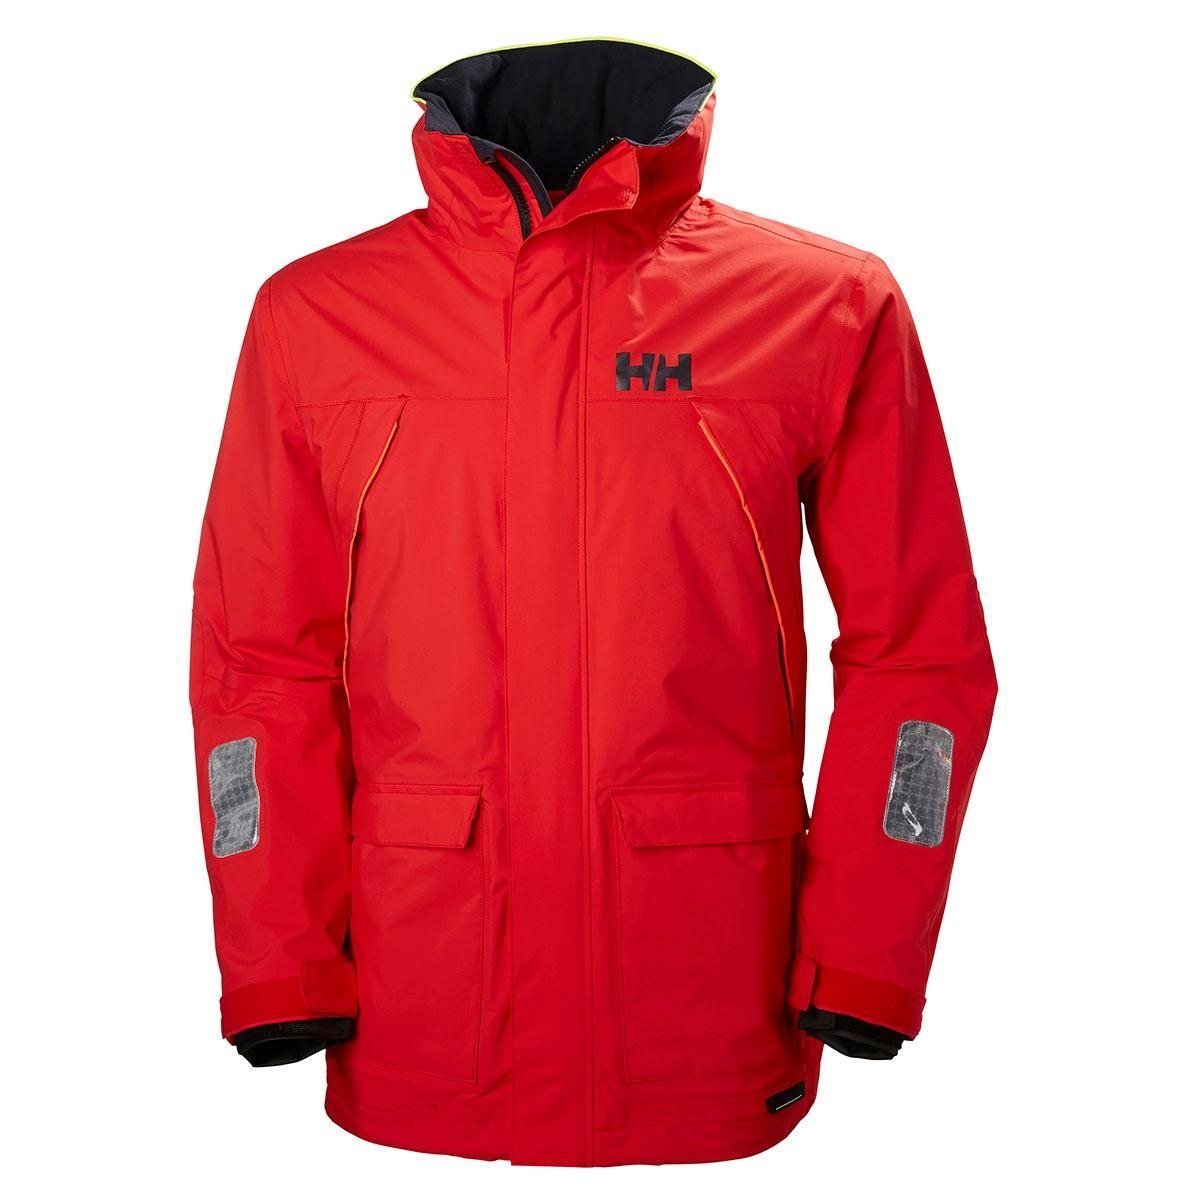 Helly Hansen PIER JACKET Dame RØD XL